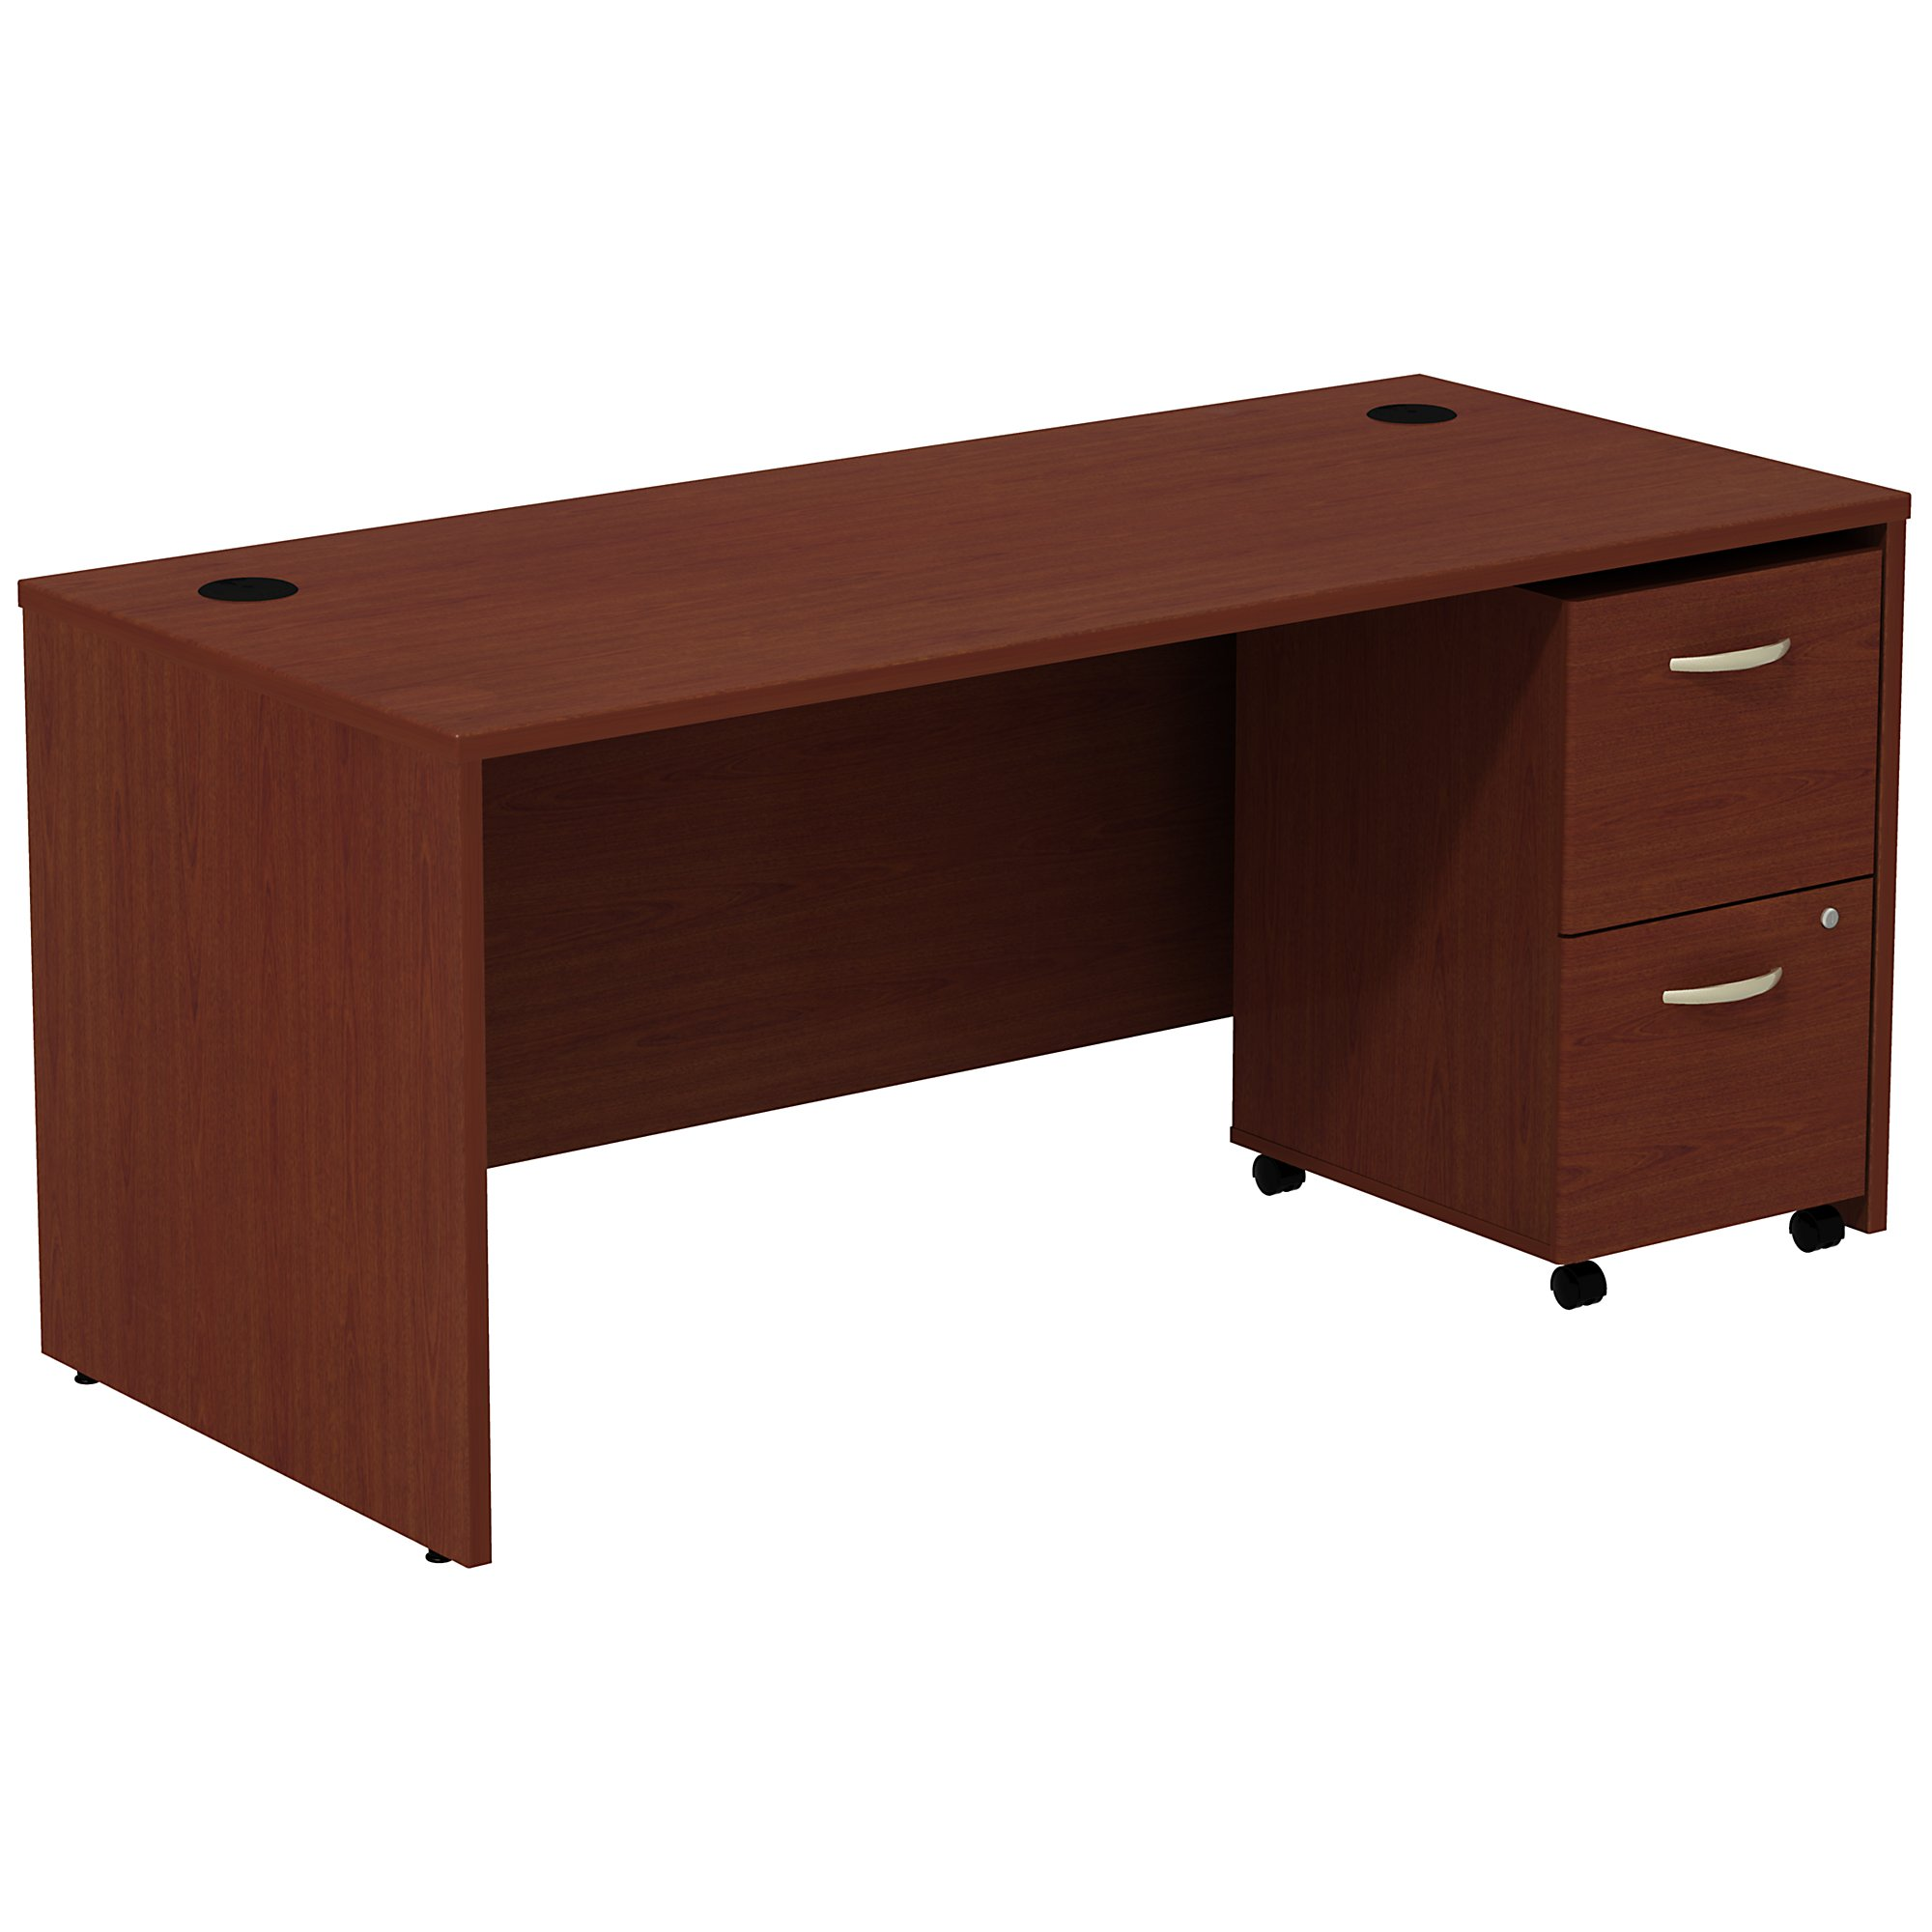 mahogany series c desk with mobile pedestal